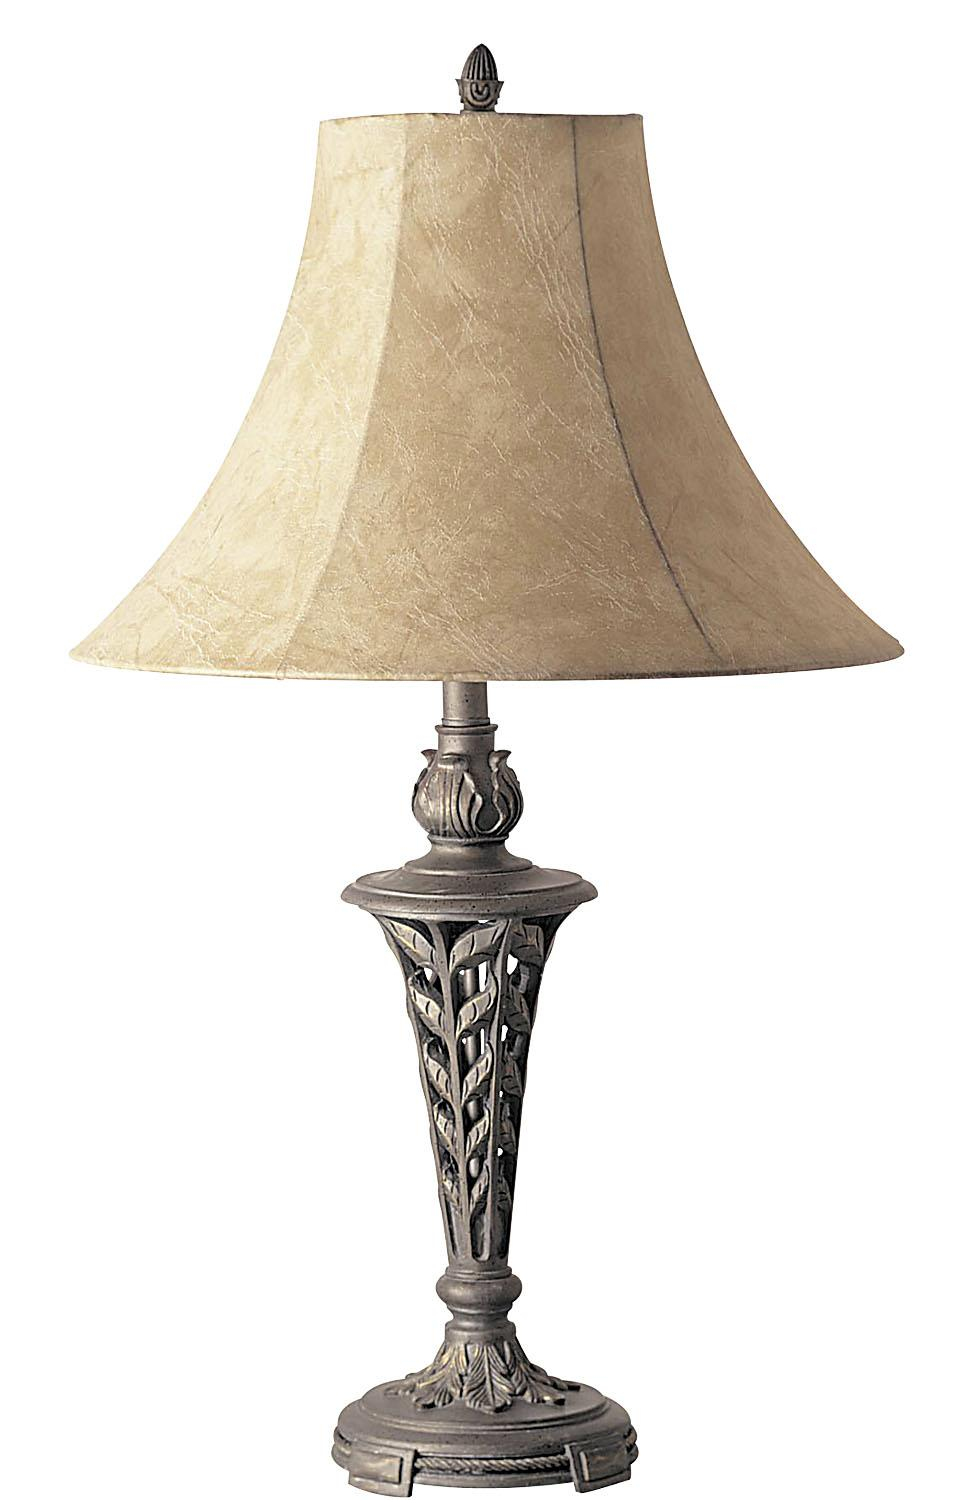 Vintage Table Lamps : Antique brass table lamp